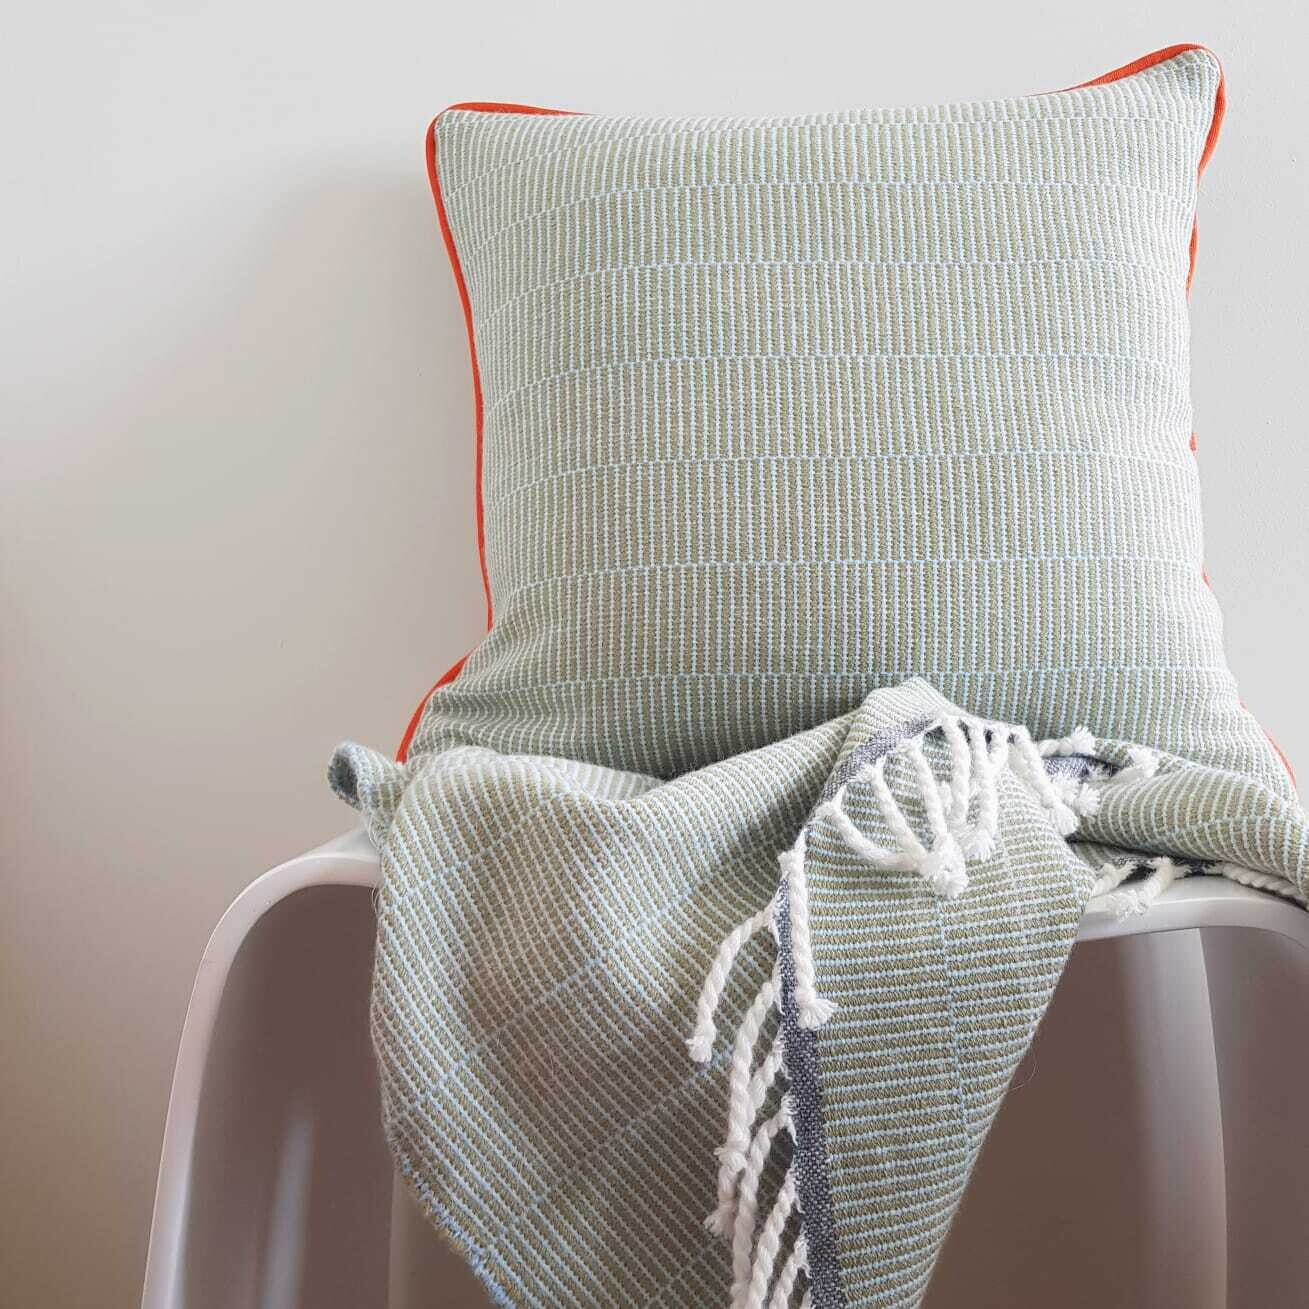 Forget-me-not Cushion